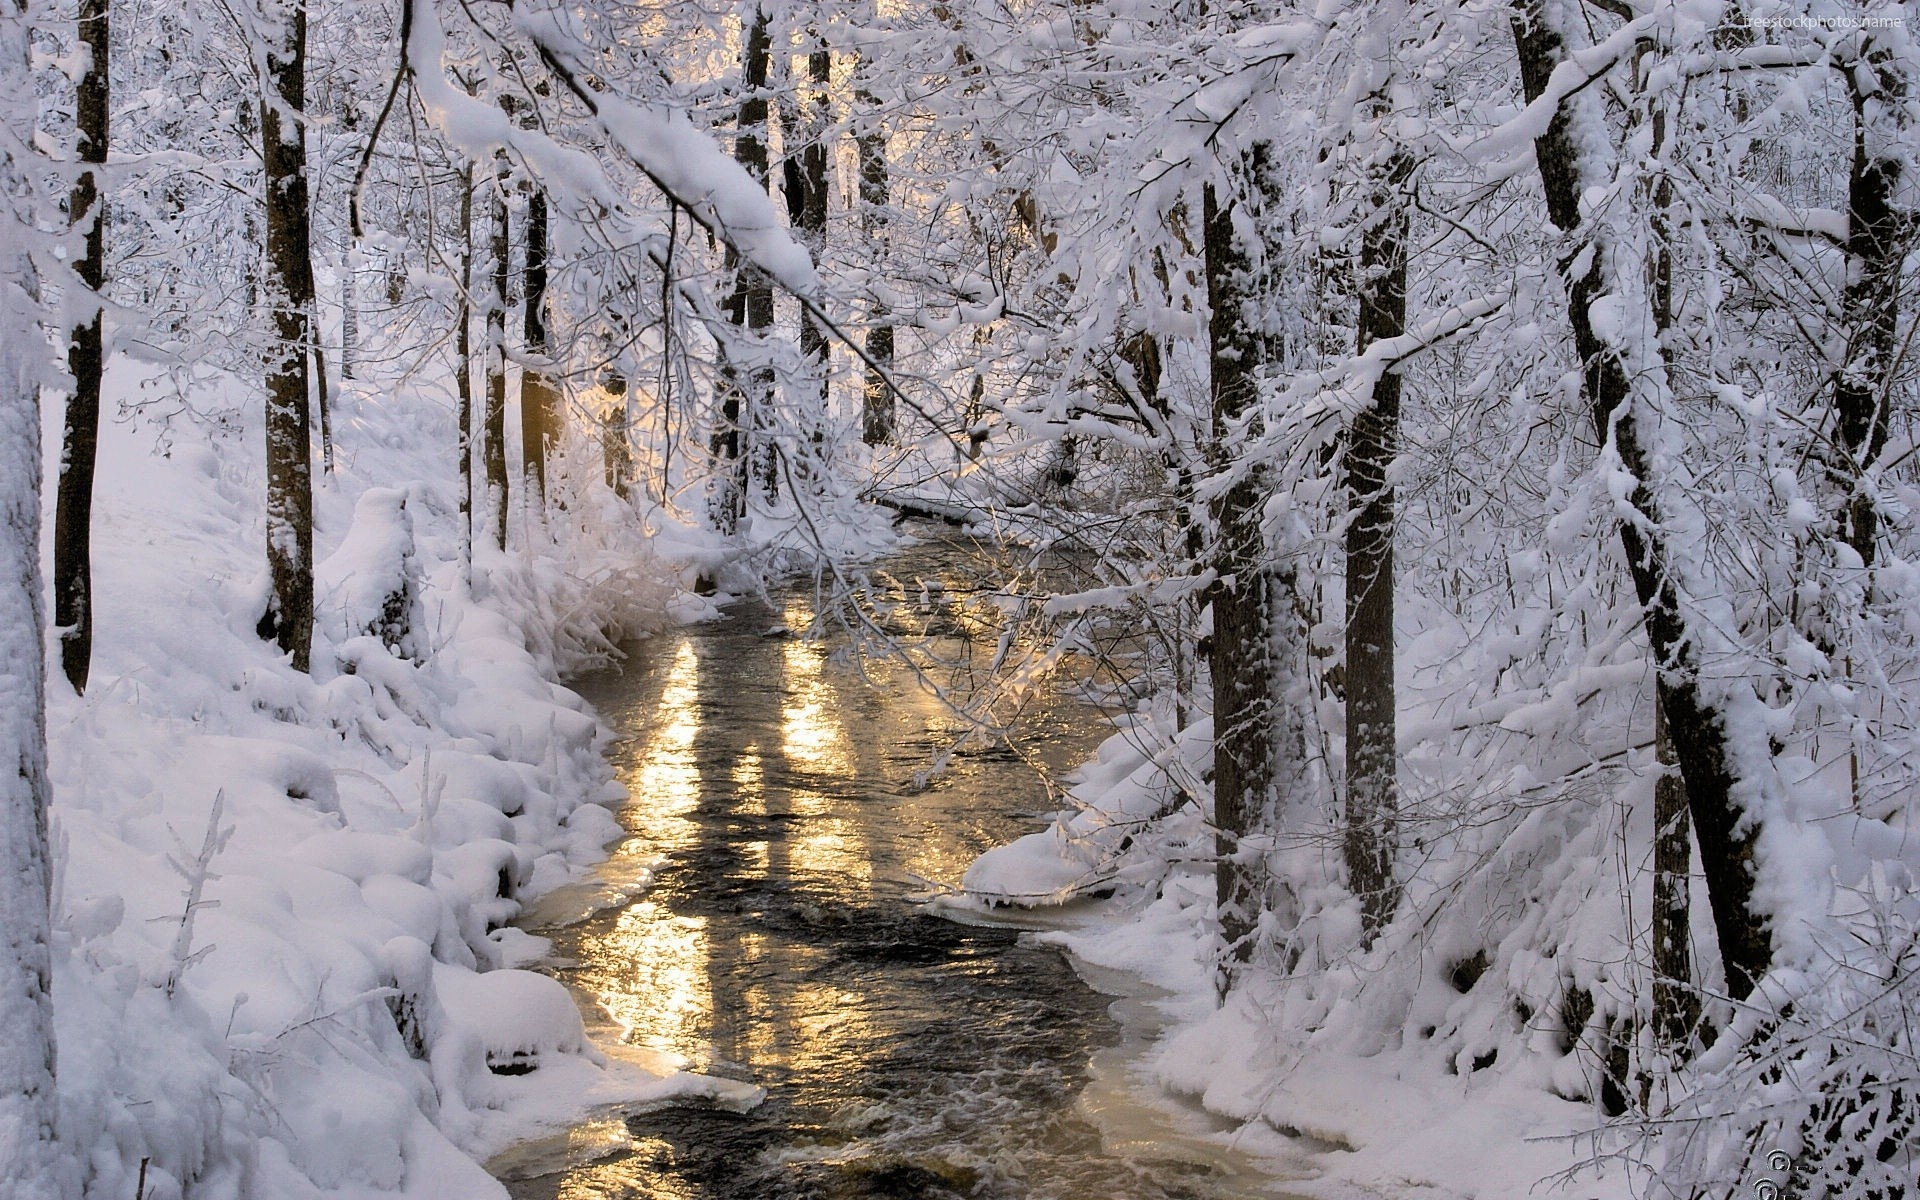 Download Stock Photos of creek and snowy trees nature images 1920x1200